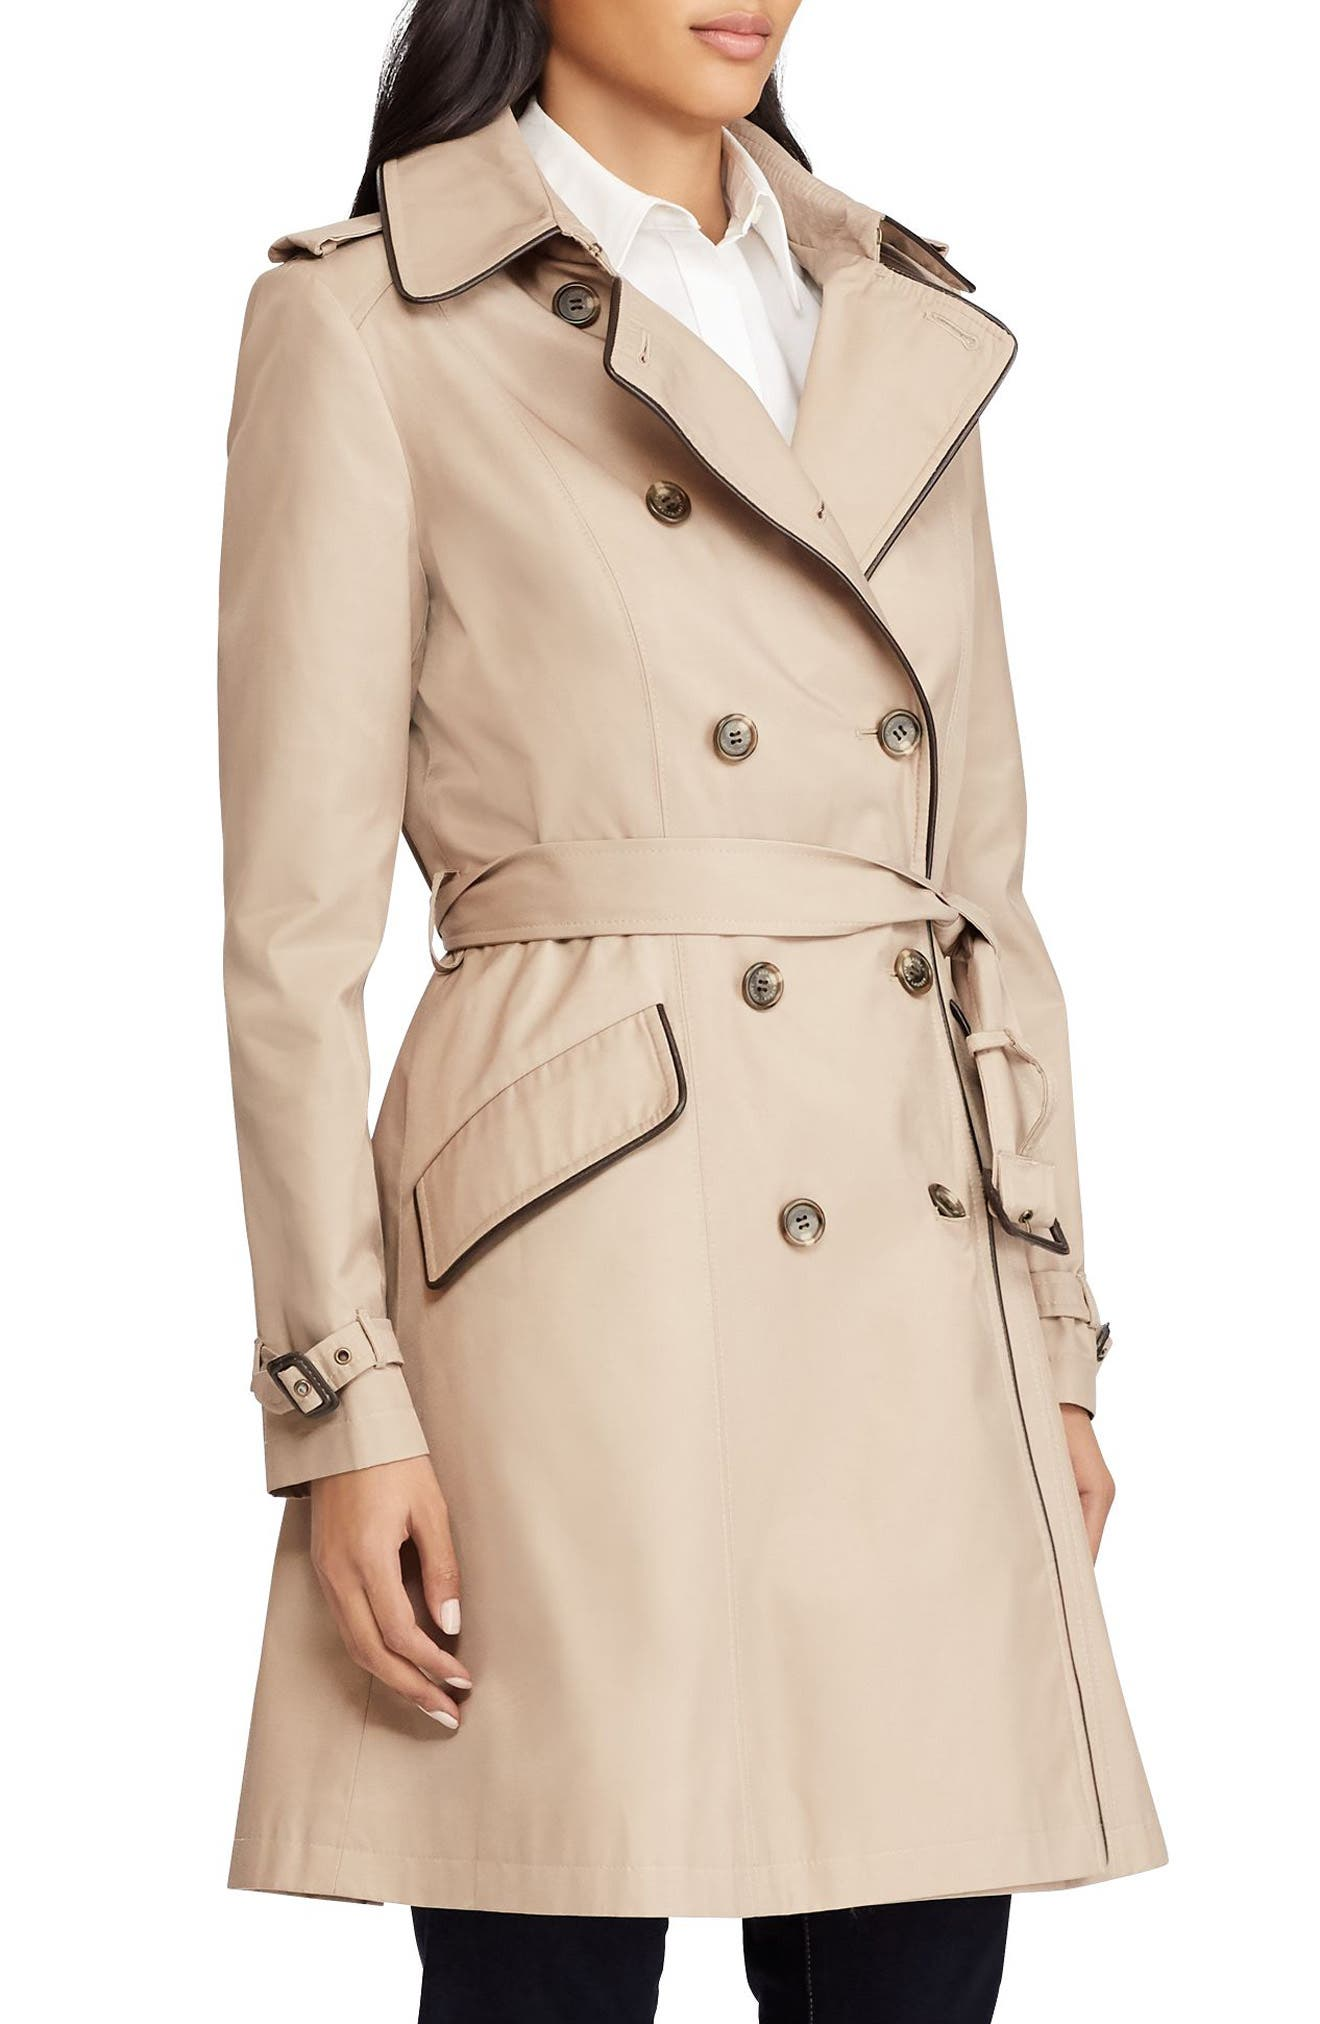 Petite Short Trench Coat $240